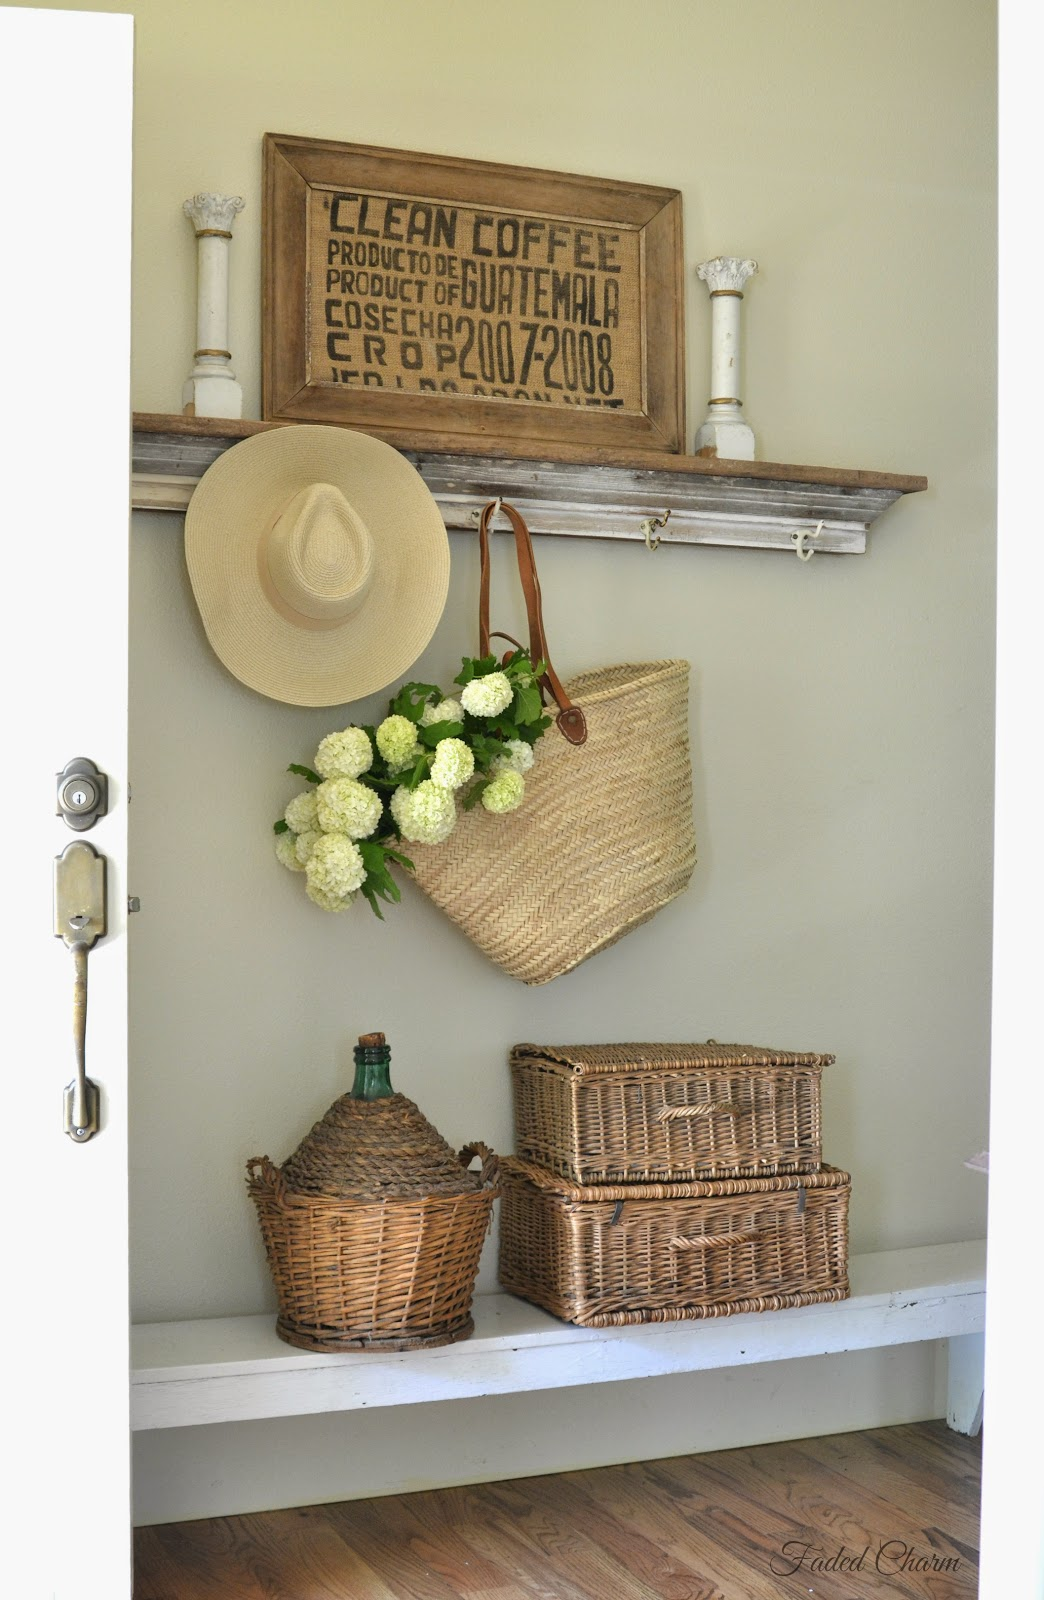 FARMHOUSE TOUR – Faded Charm